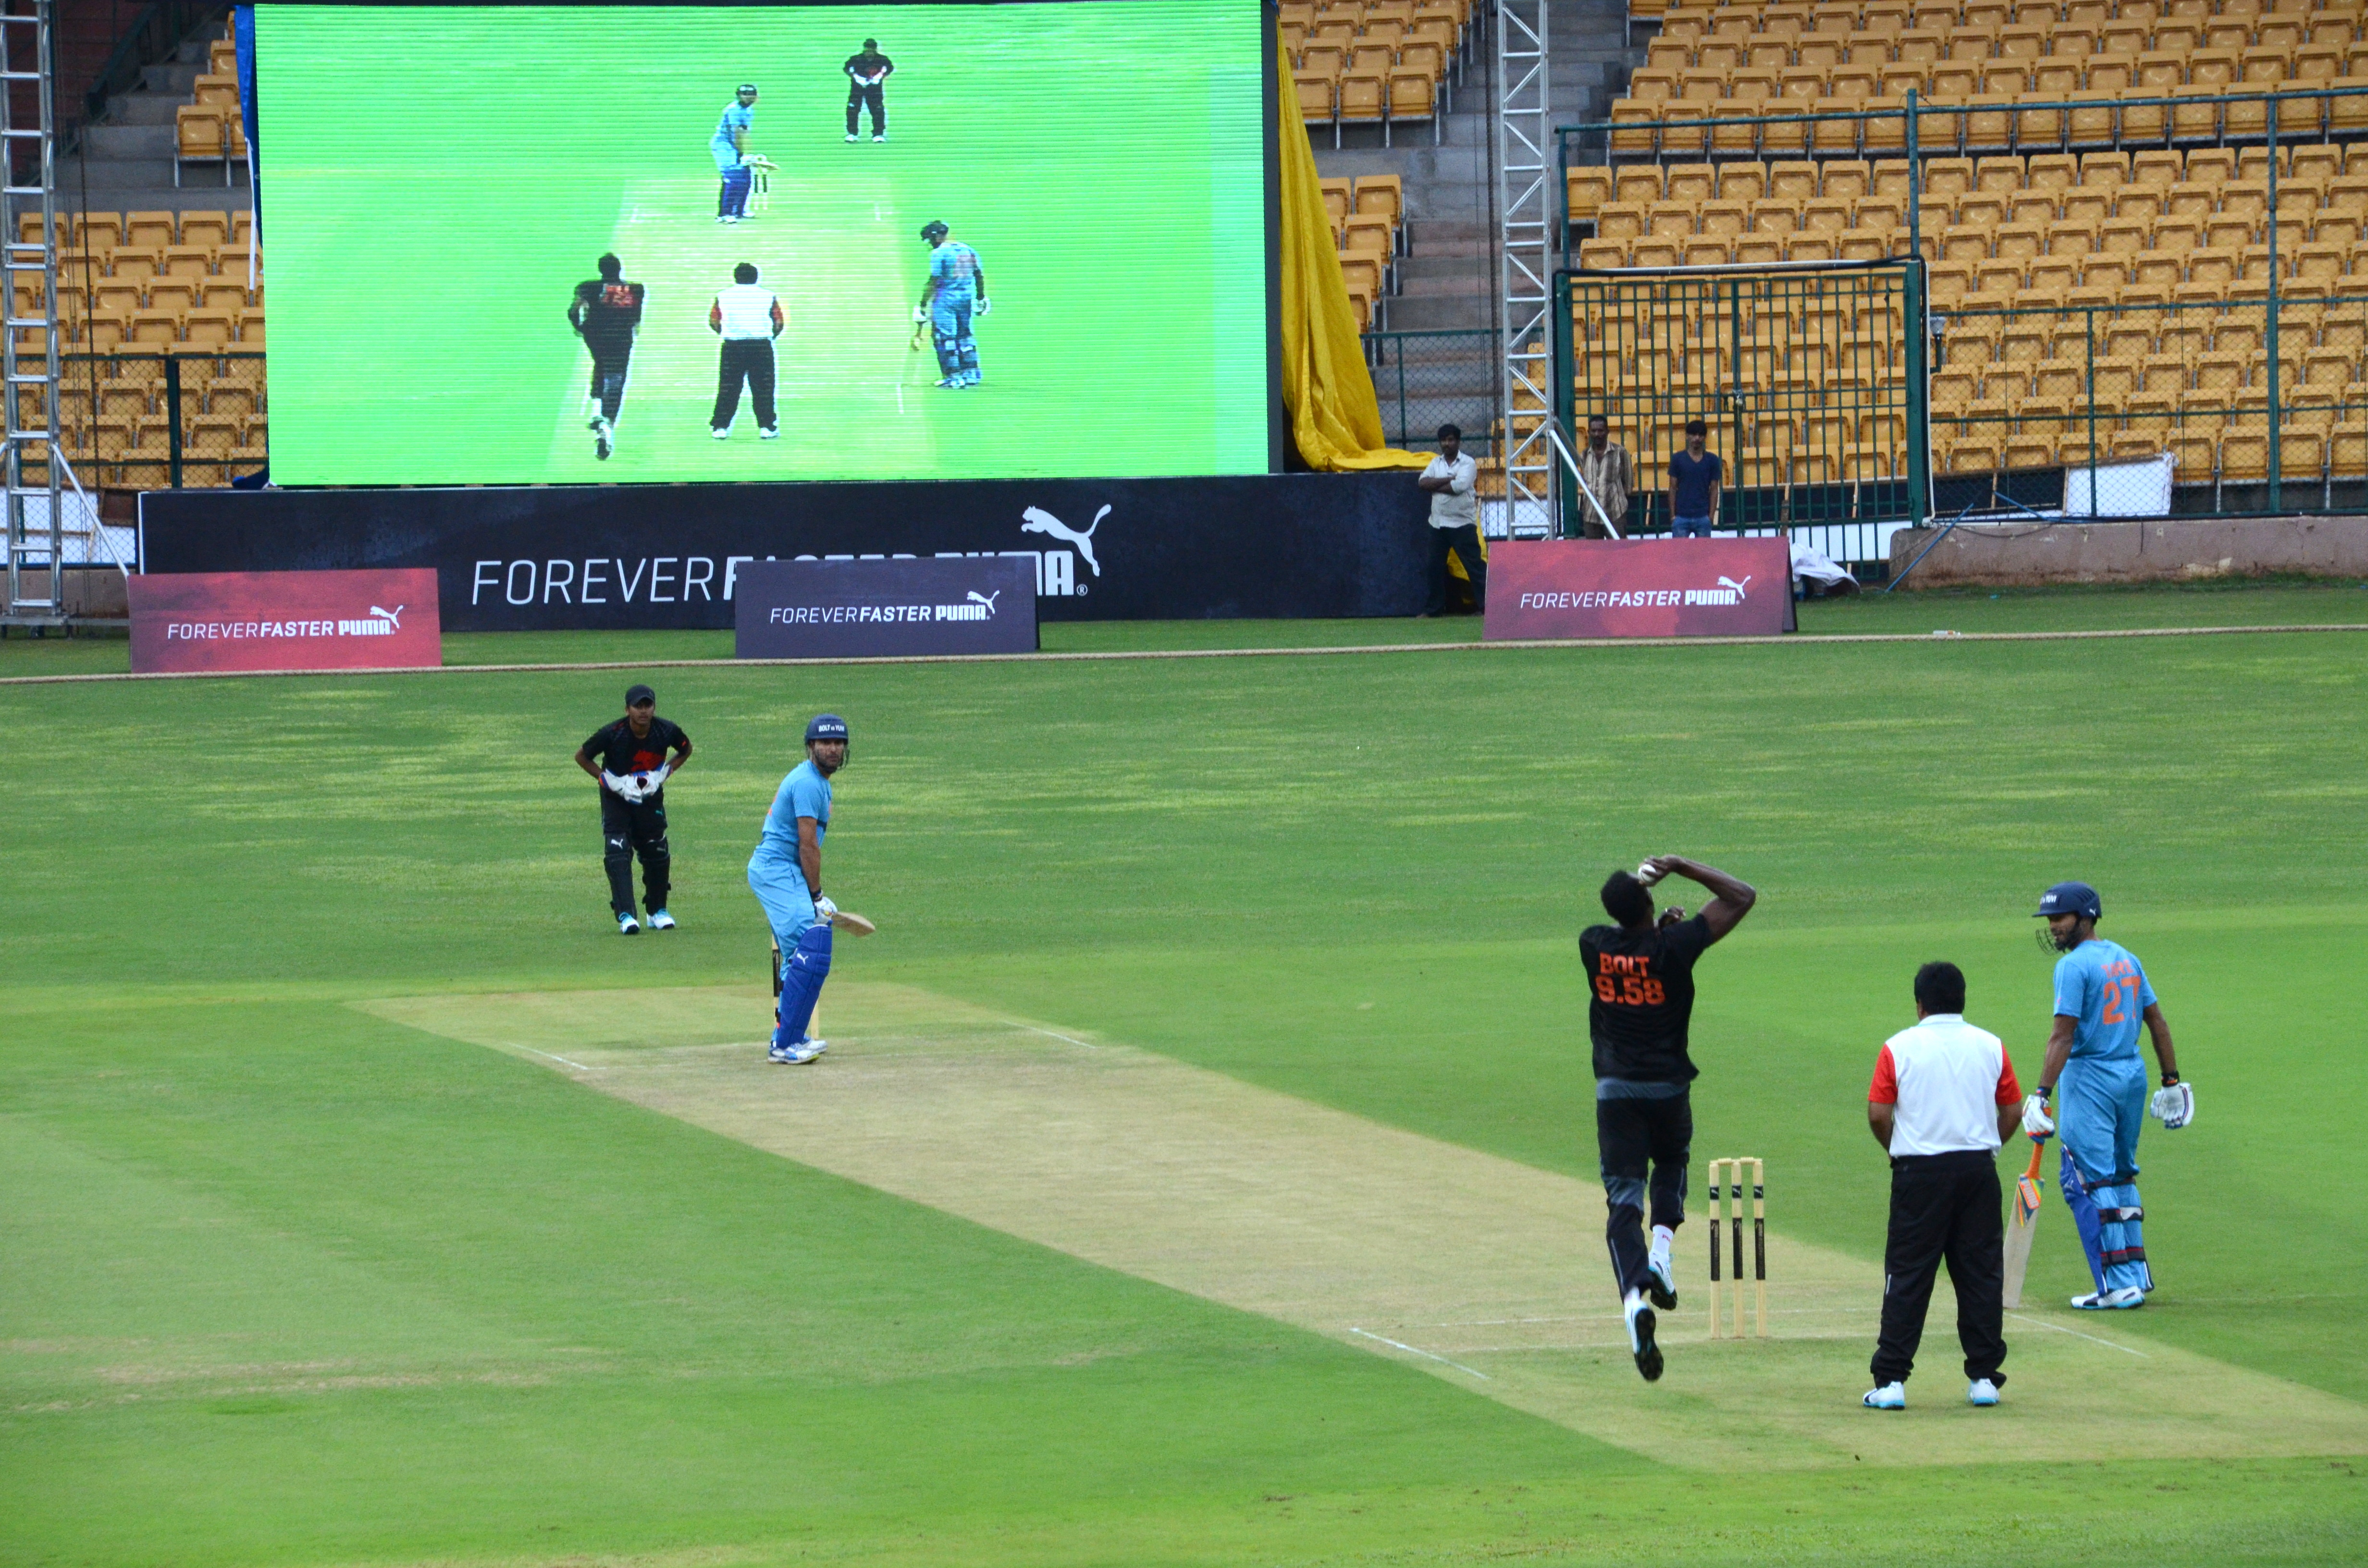 Cricket with Yuvraj Singh in India